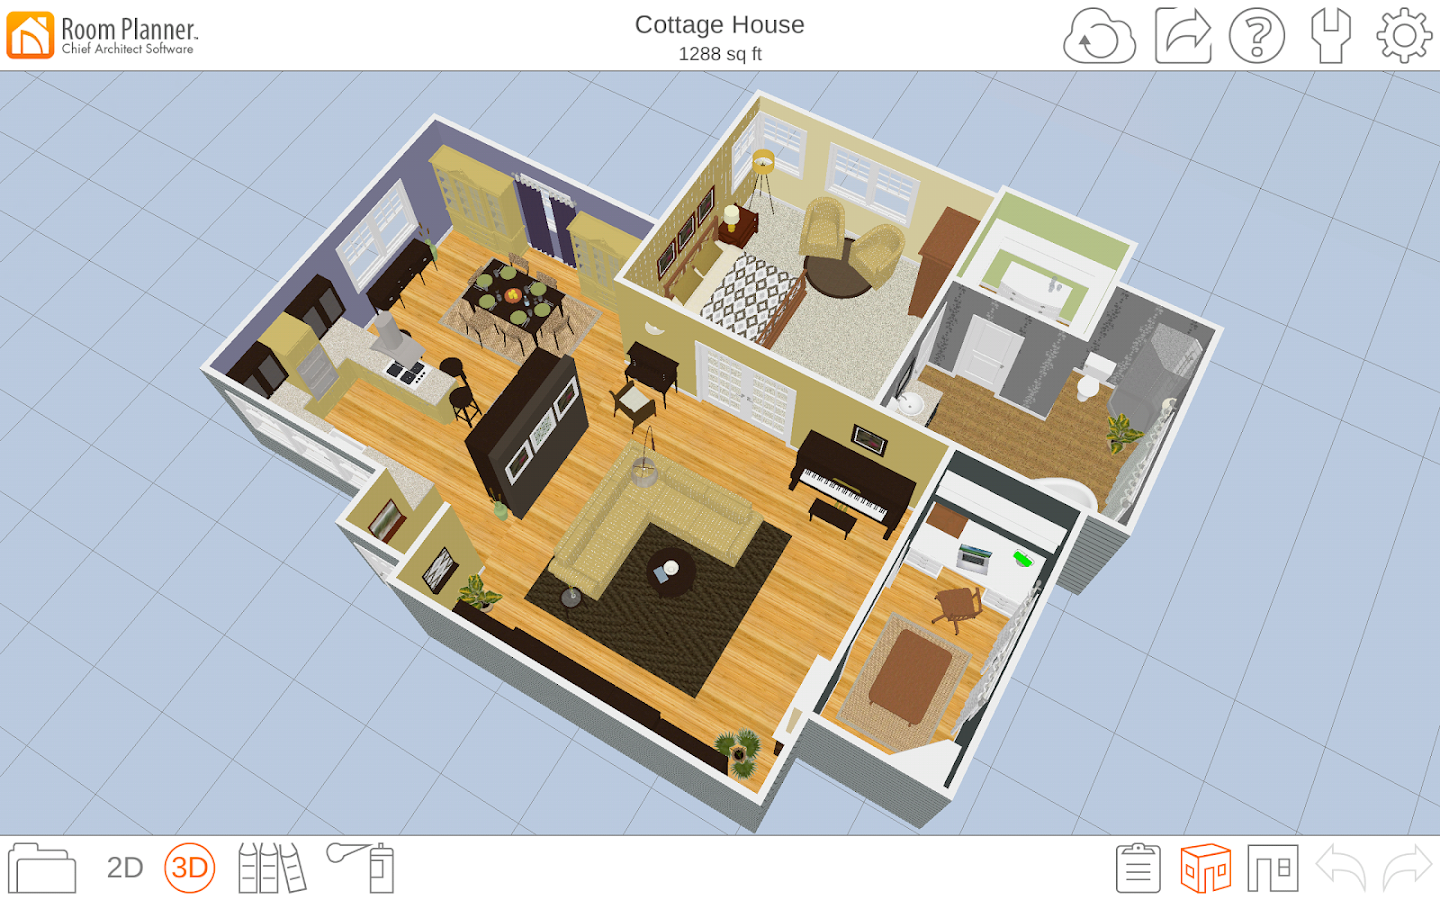 Room planner home design android apps on google play for House layout app